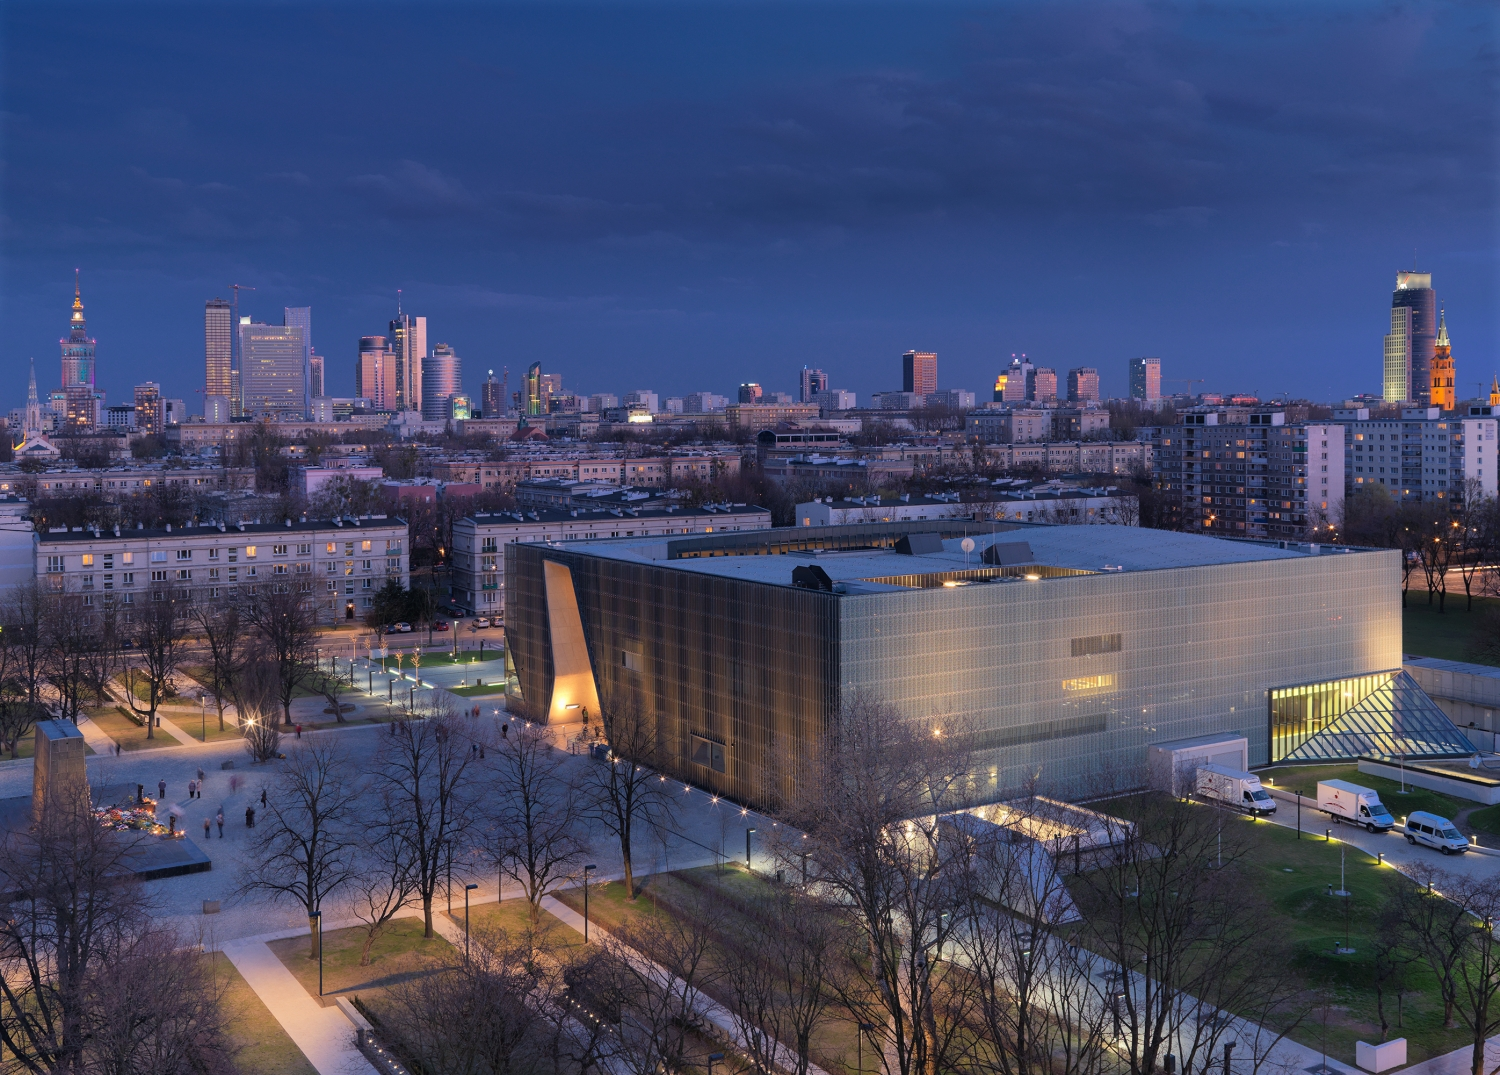 Polin -Museum Of The History Of Polish Jews